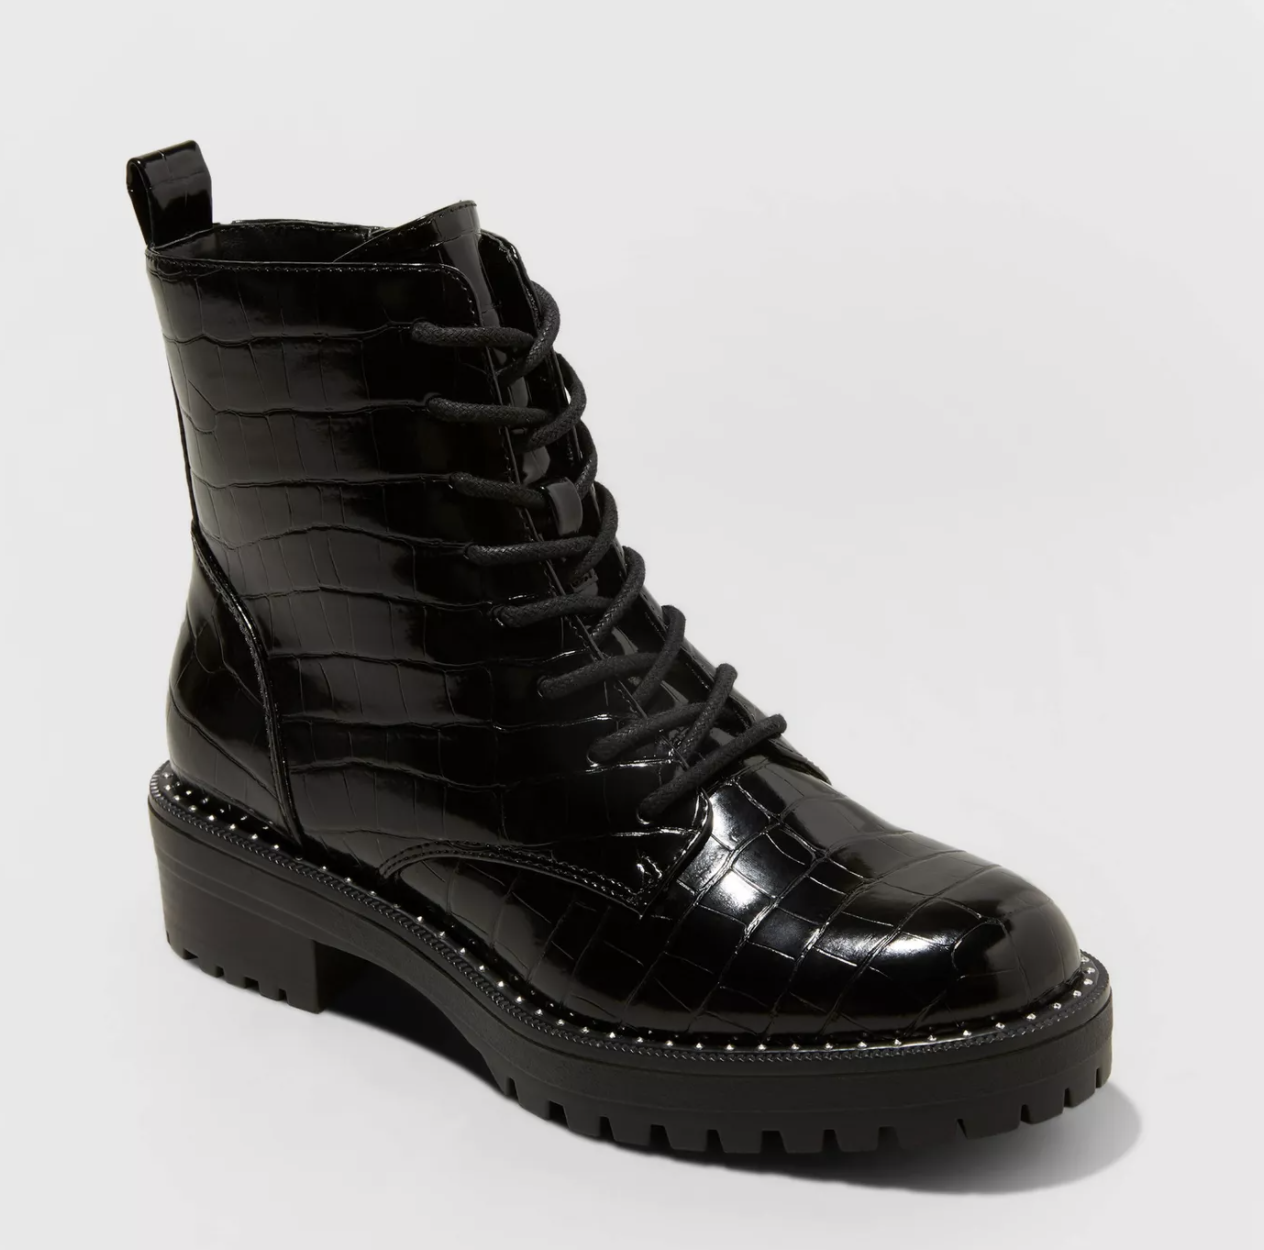 the black croc-inspired lace-up boots